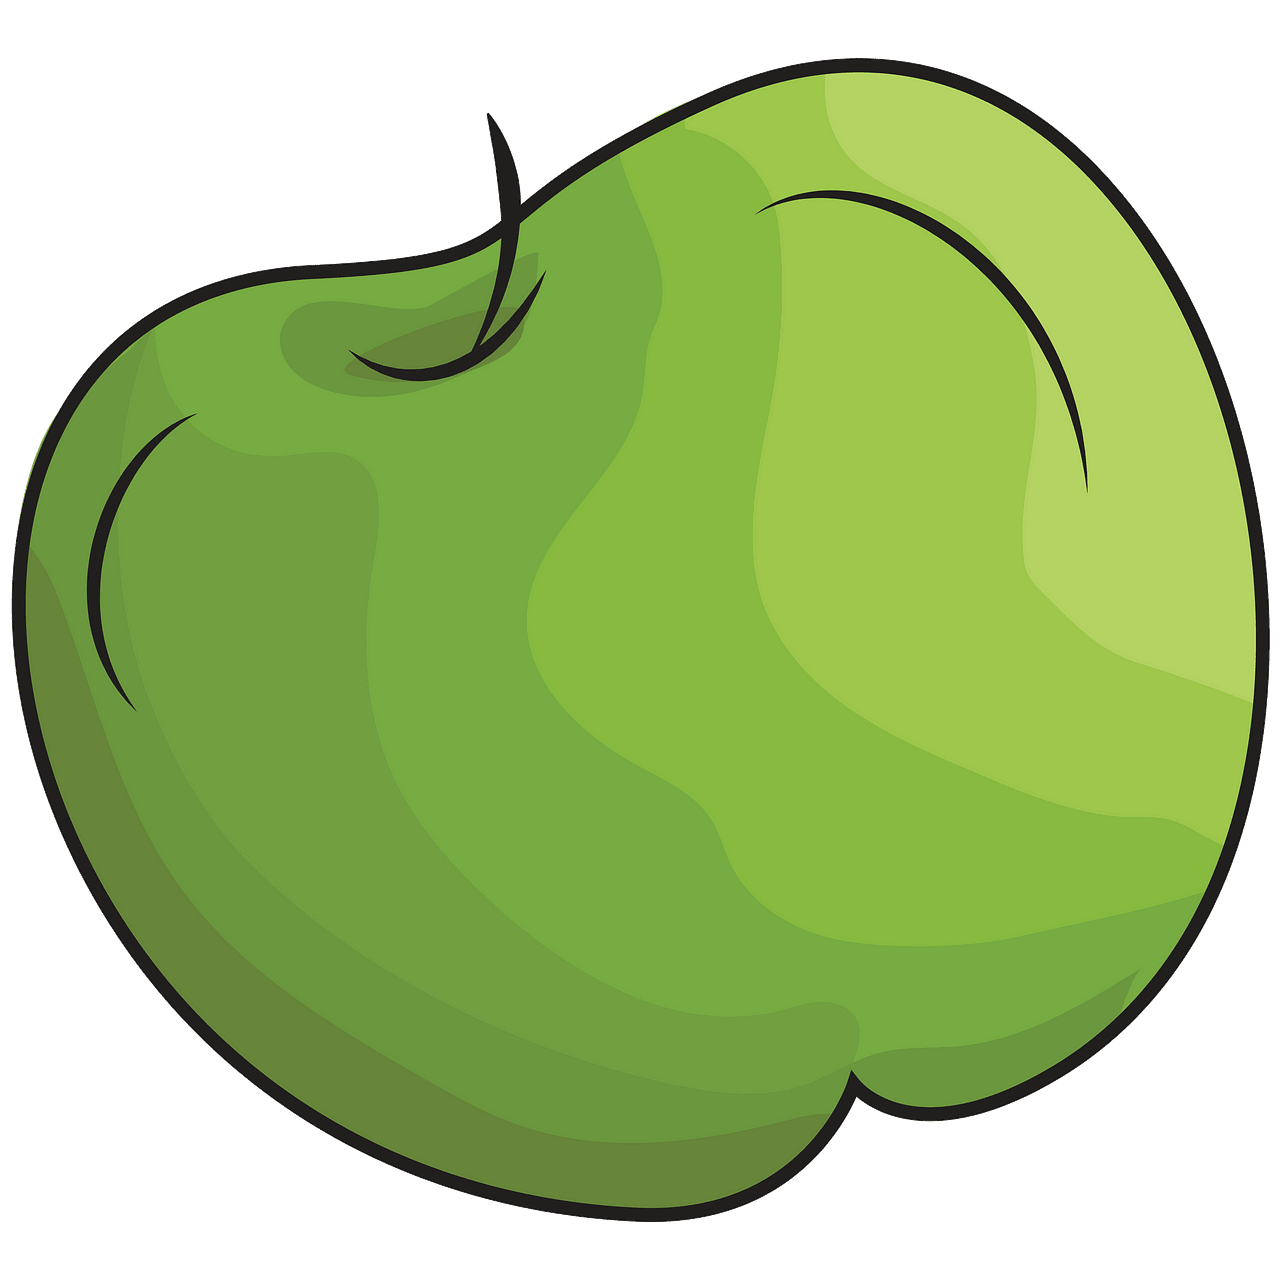 Green apple clipart. Free download..